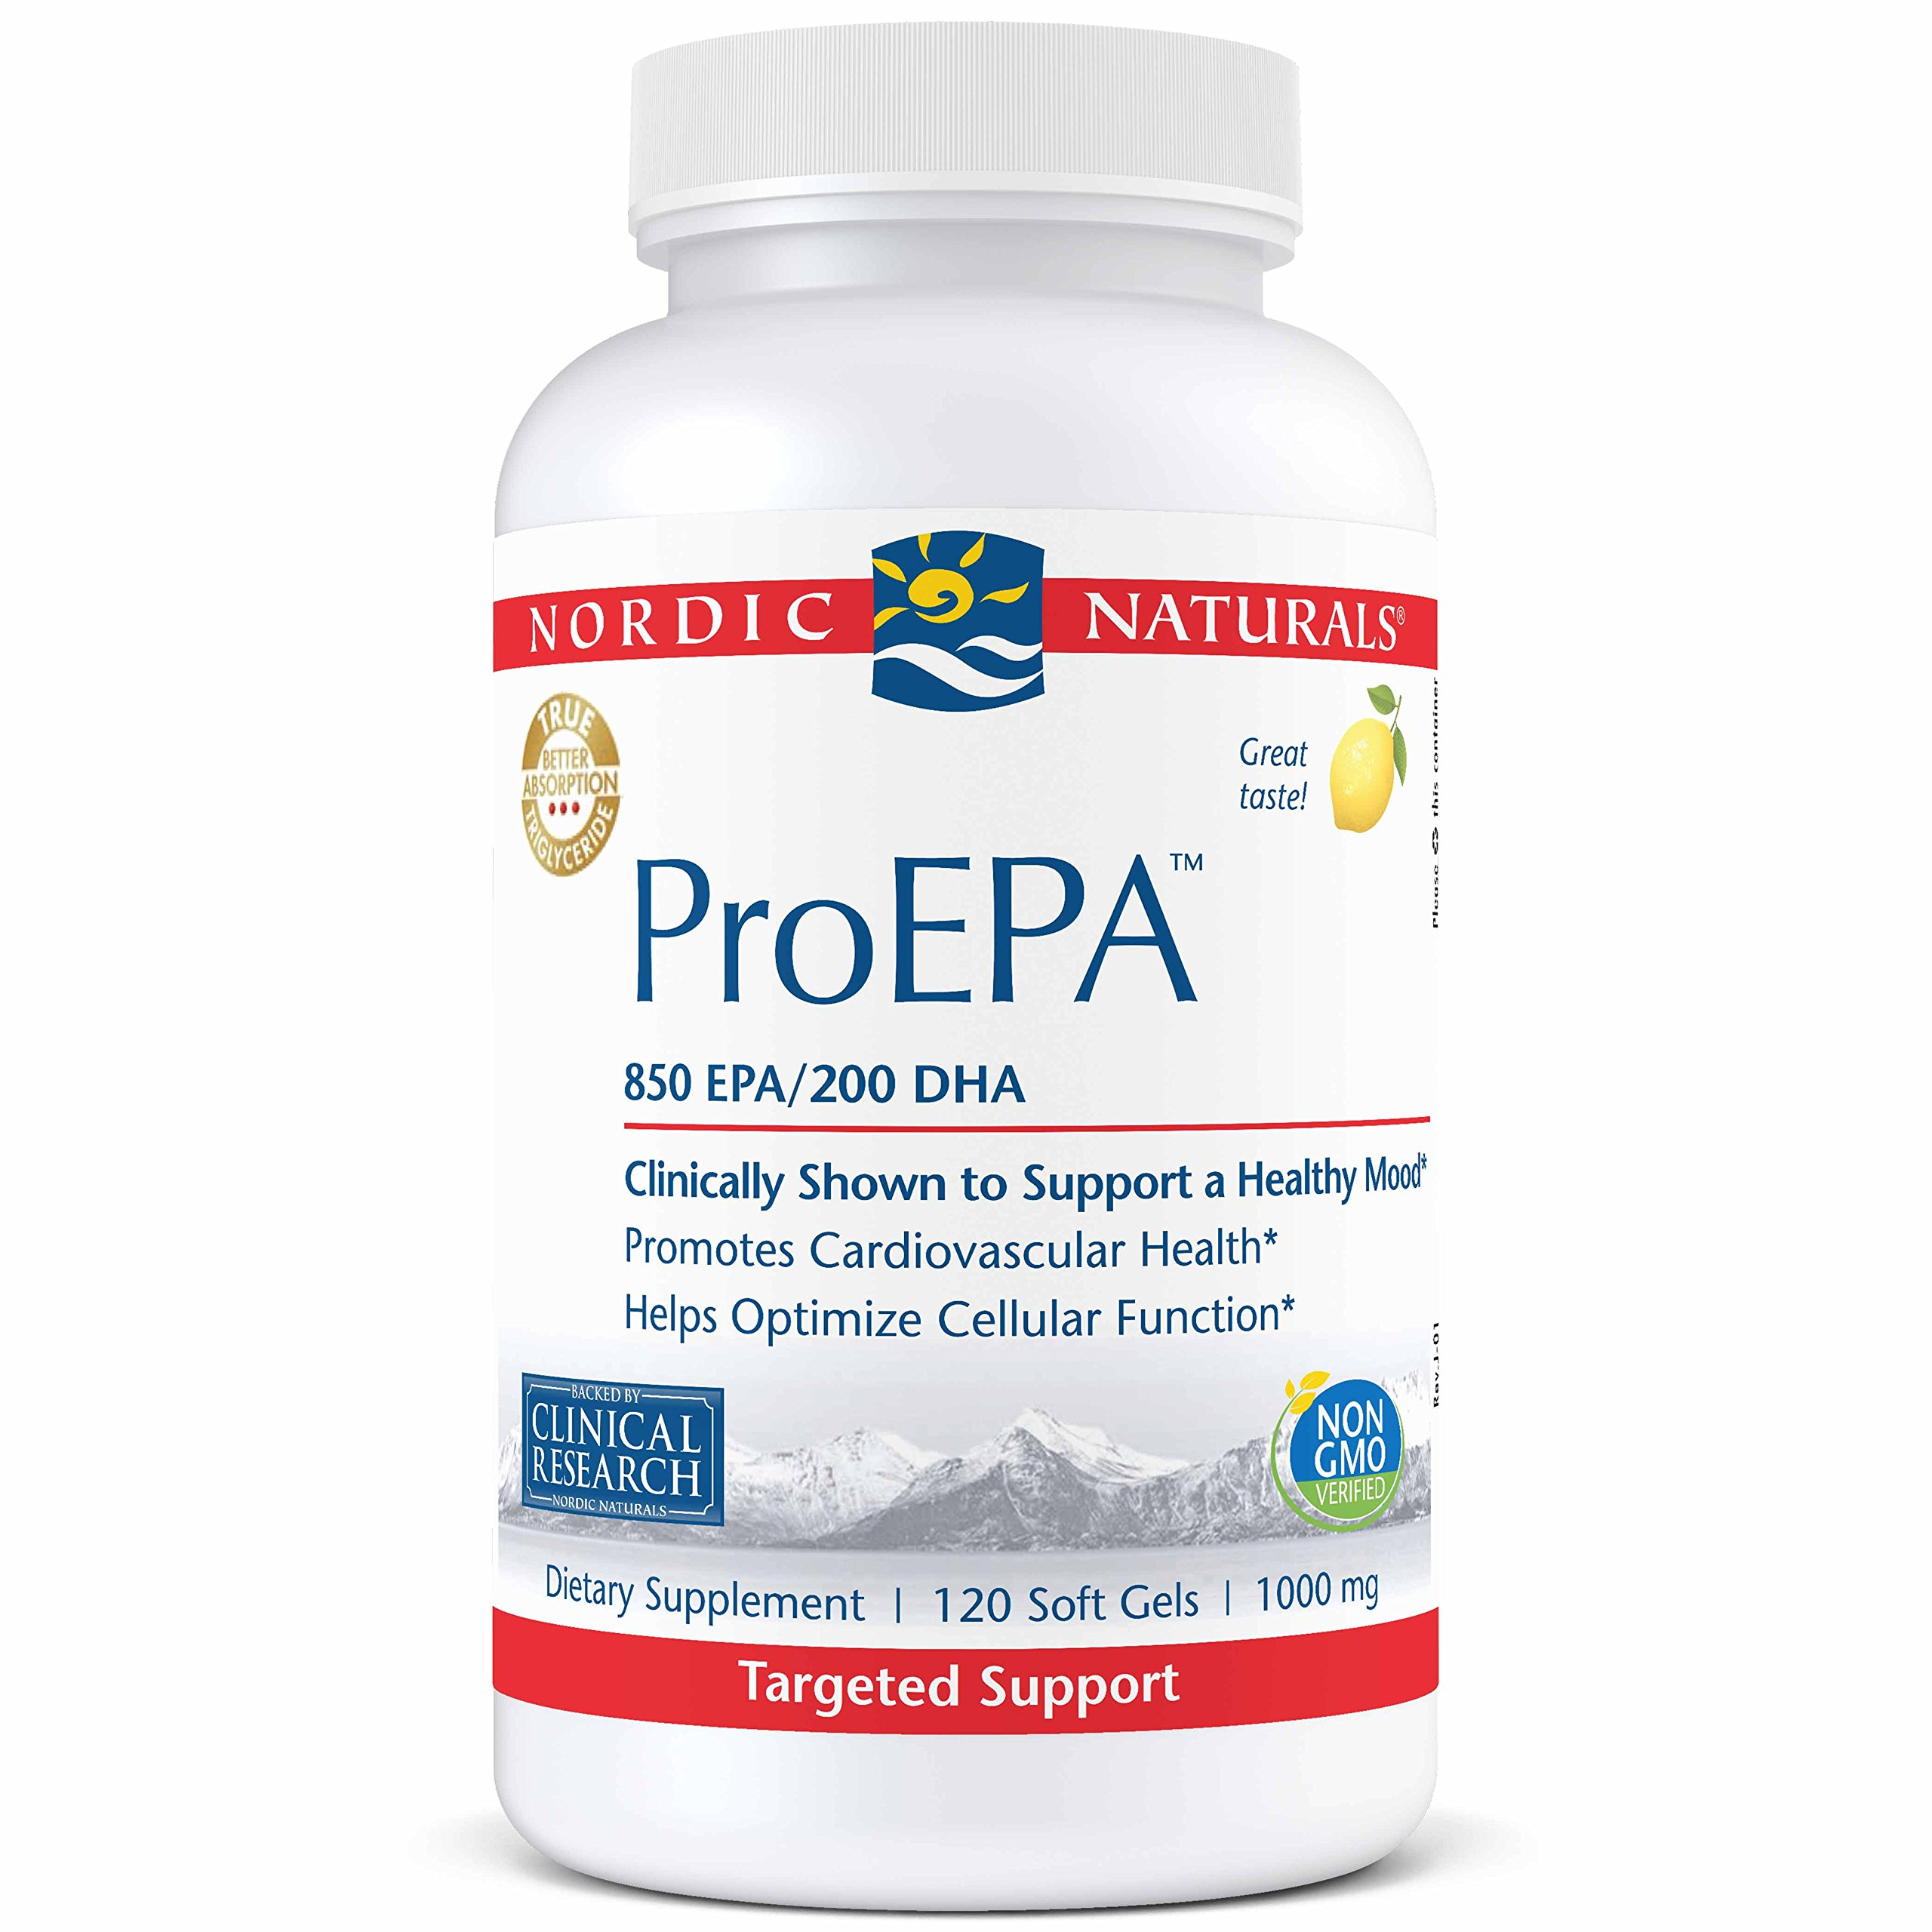 Nordic Naturals ProEPA - Fish Oil, 850 mg EPA, 200 mg DHA, Targeted Support for Cardiovascular Health, a Healthy Mood, and Optimal Cellular Function*, Lemon Flavor, 120 Soft Gels